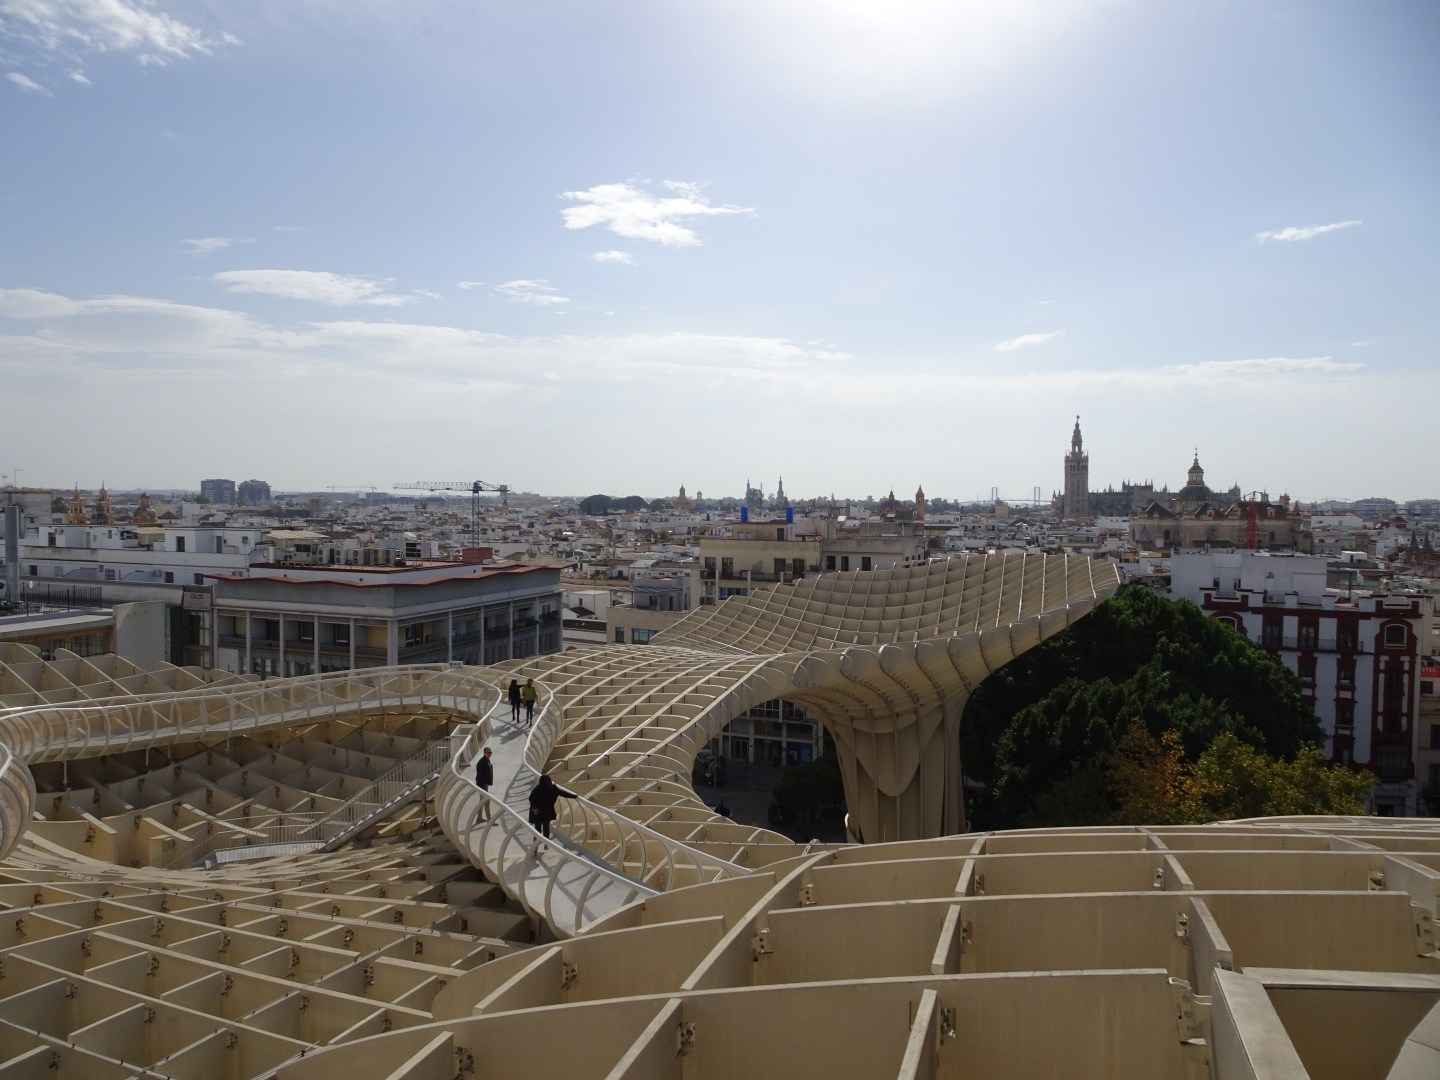 Views from the Seville metropol parasol